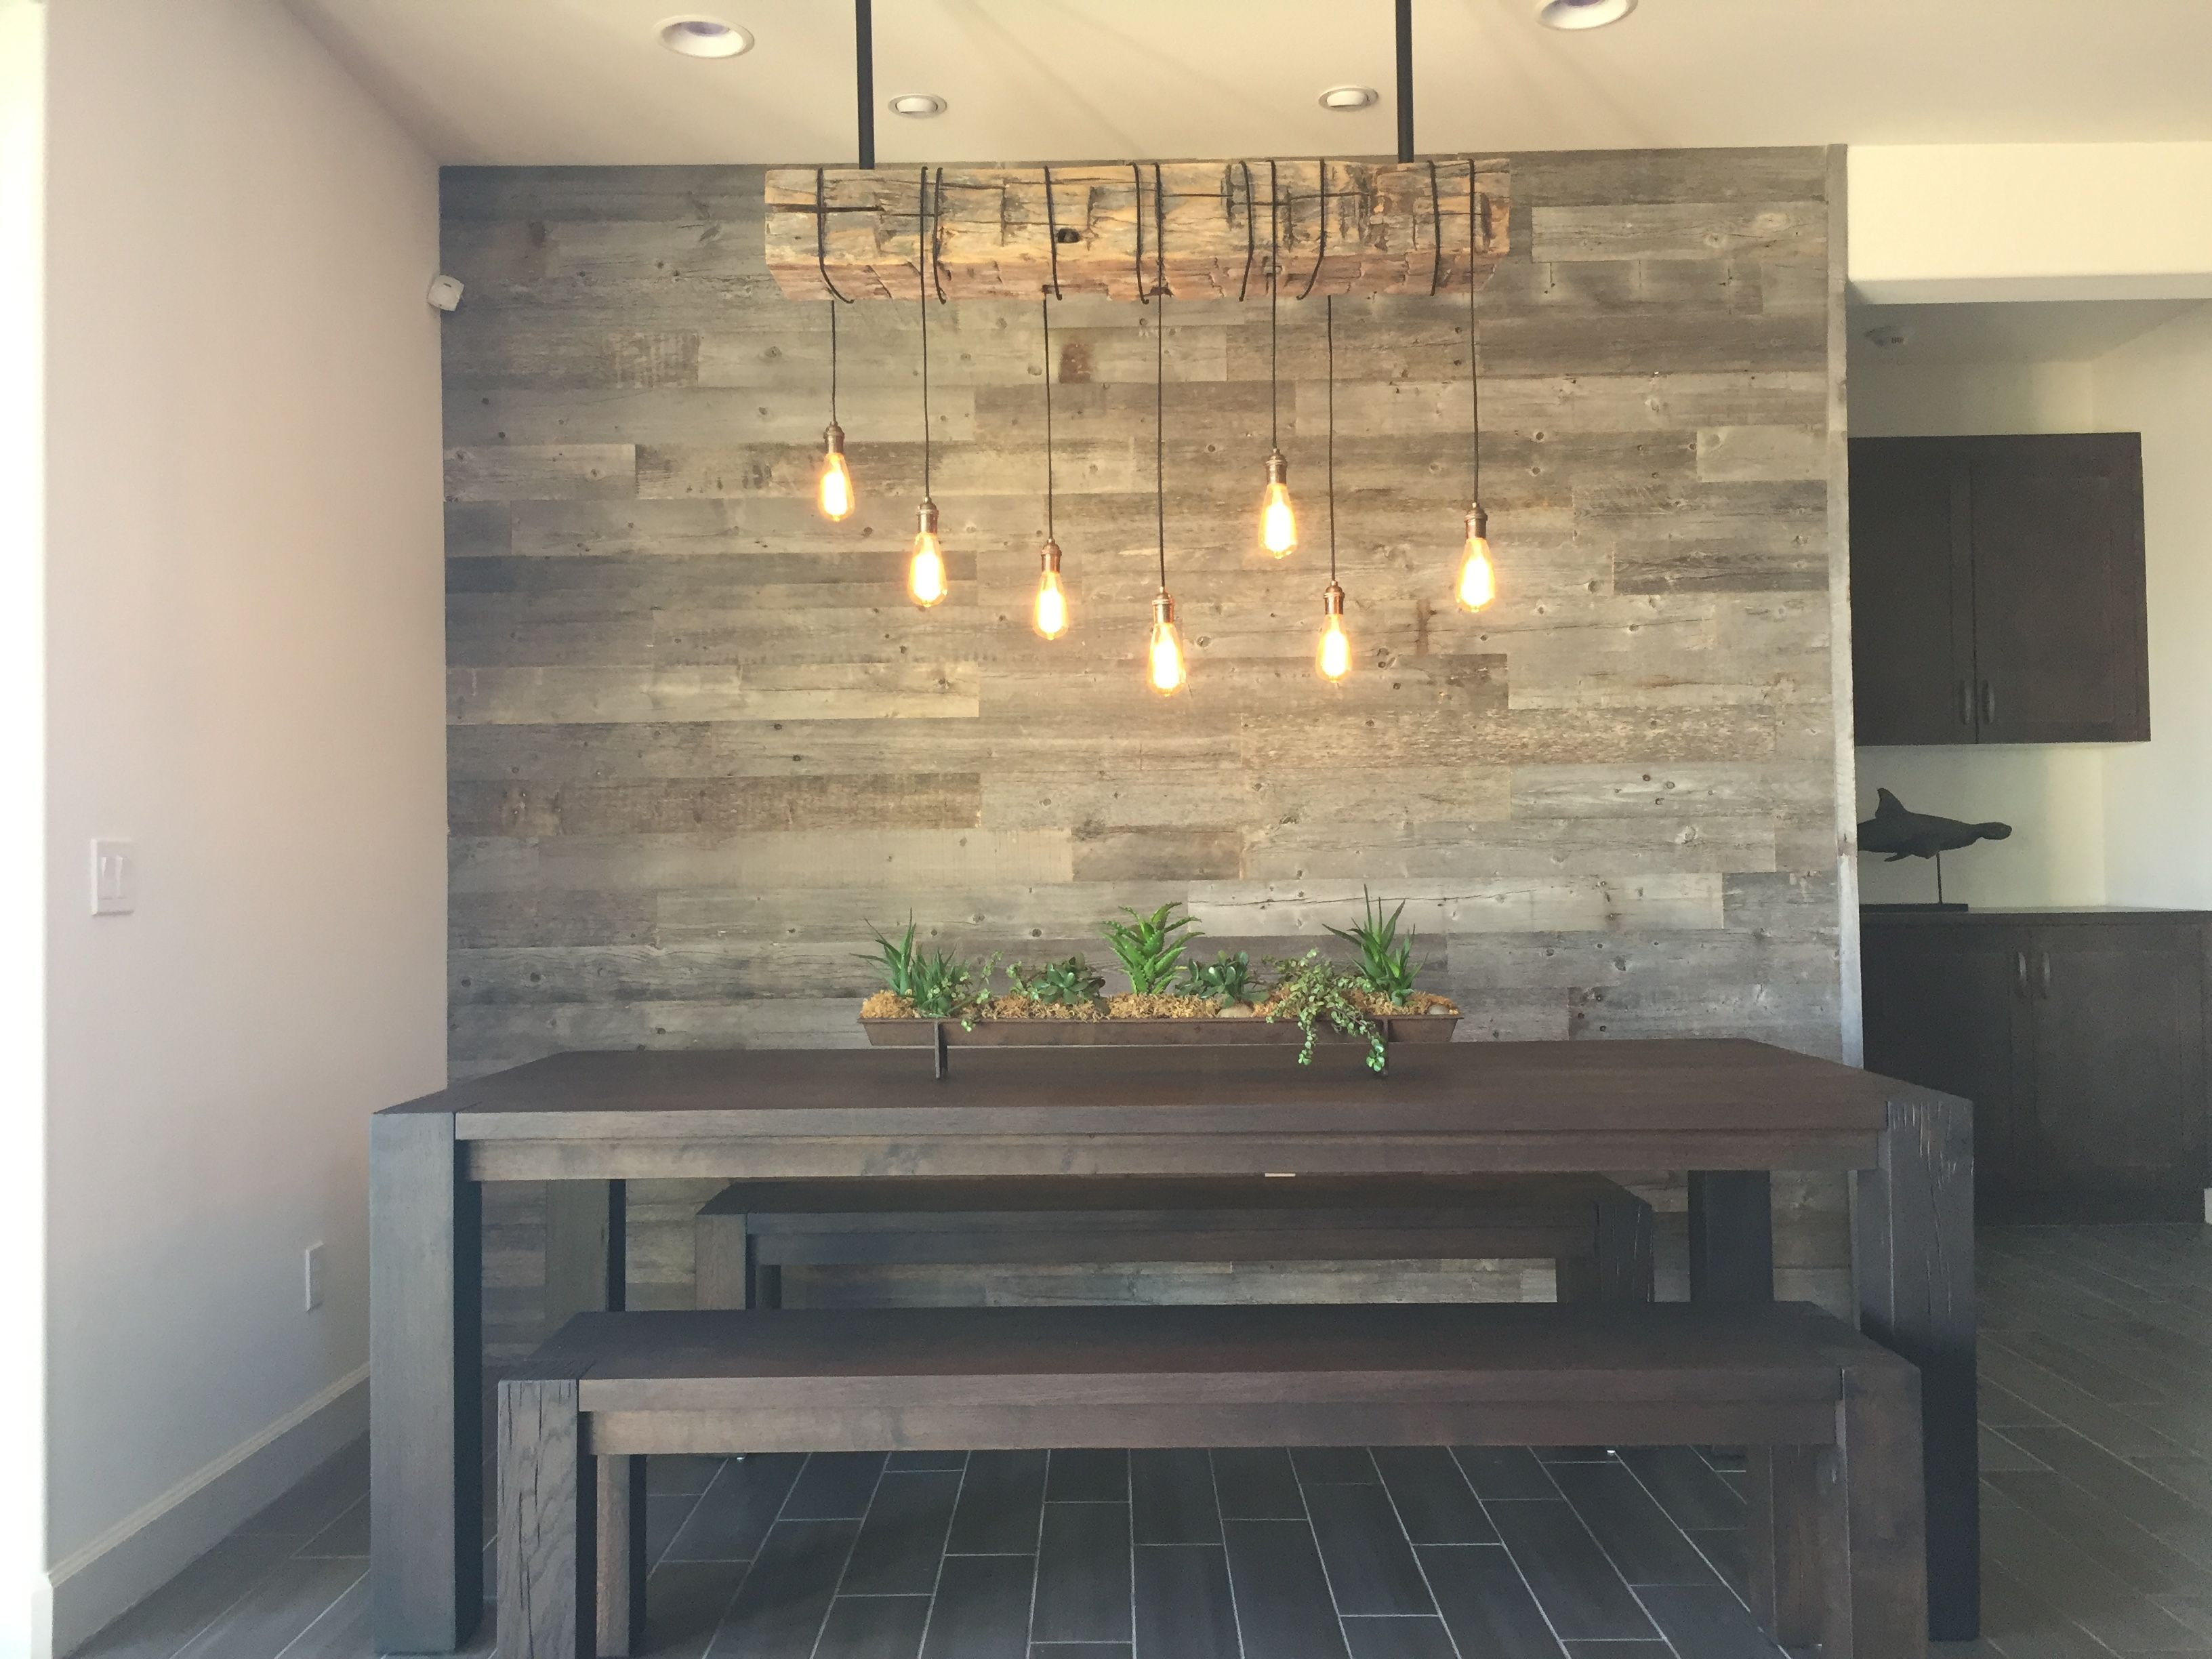 Wood Wall Living Room Sets Raleigh Nc 30 Inspiring Accent Ideas To Change An Area For The Home Go Through These Diy If You Are Soon Planning On Painting Walls In Your Adding